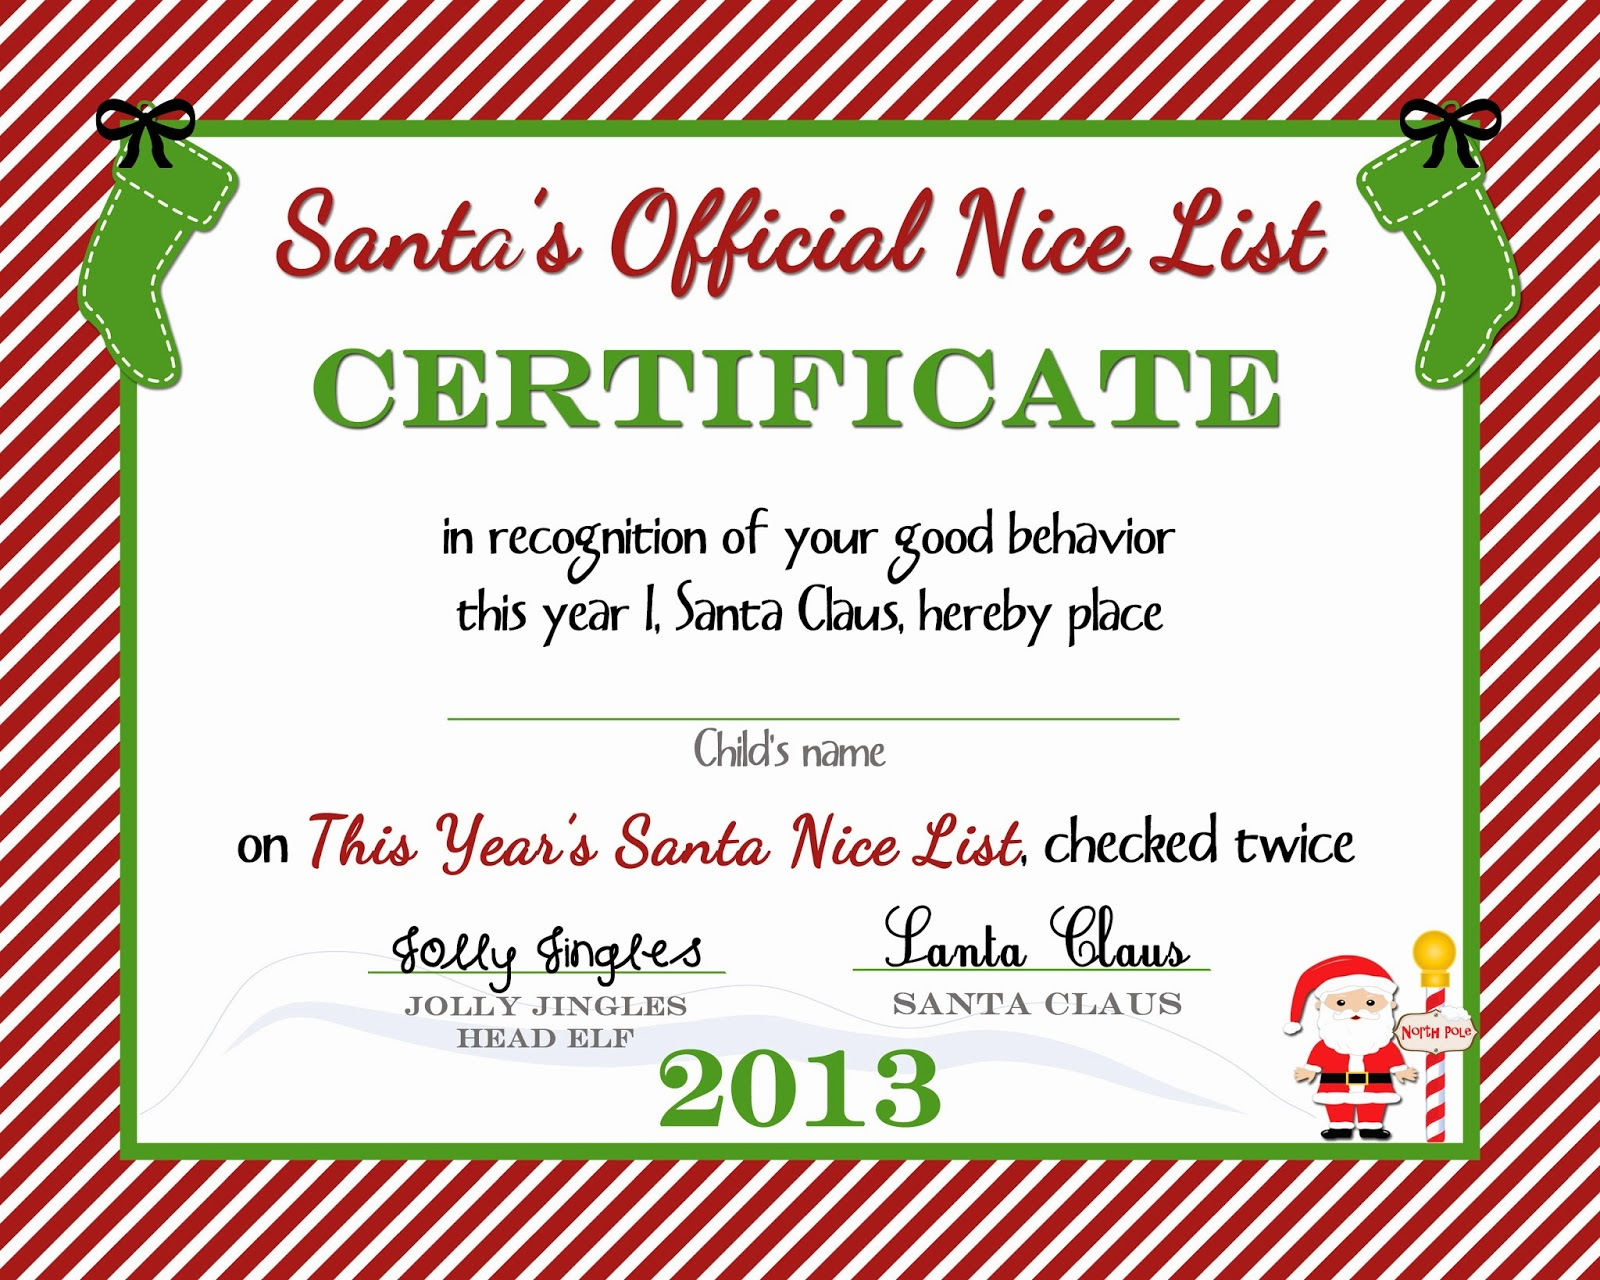 Physical Security Specialist Resumeprintable gift certificate – Christmas Certificates Templates Free